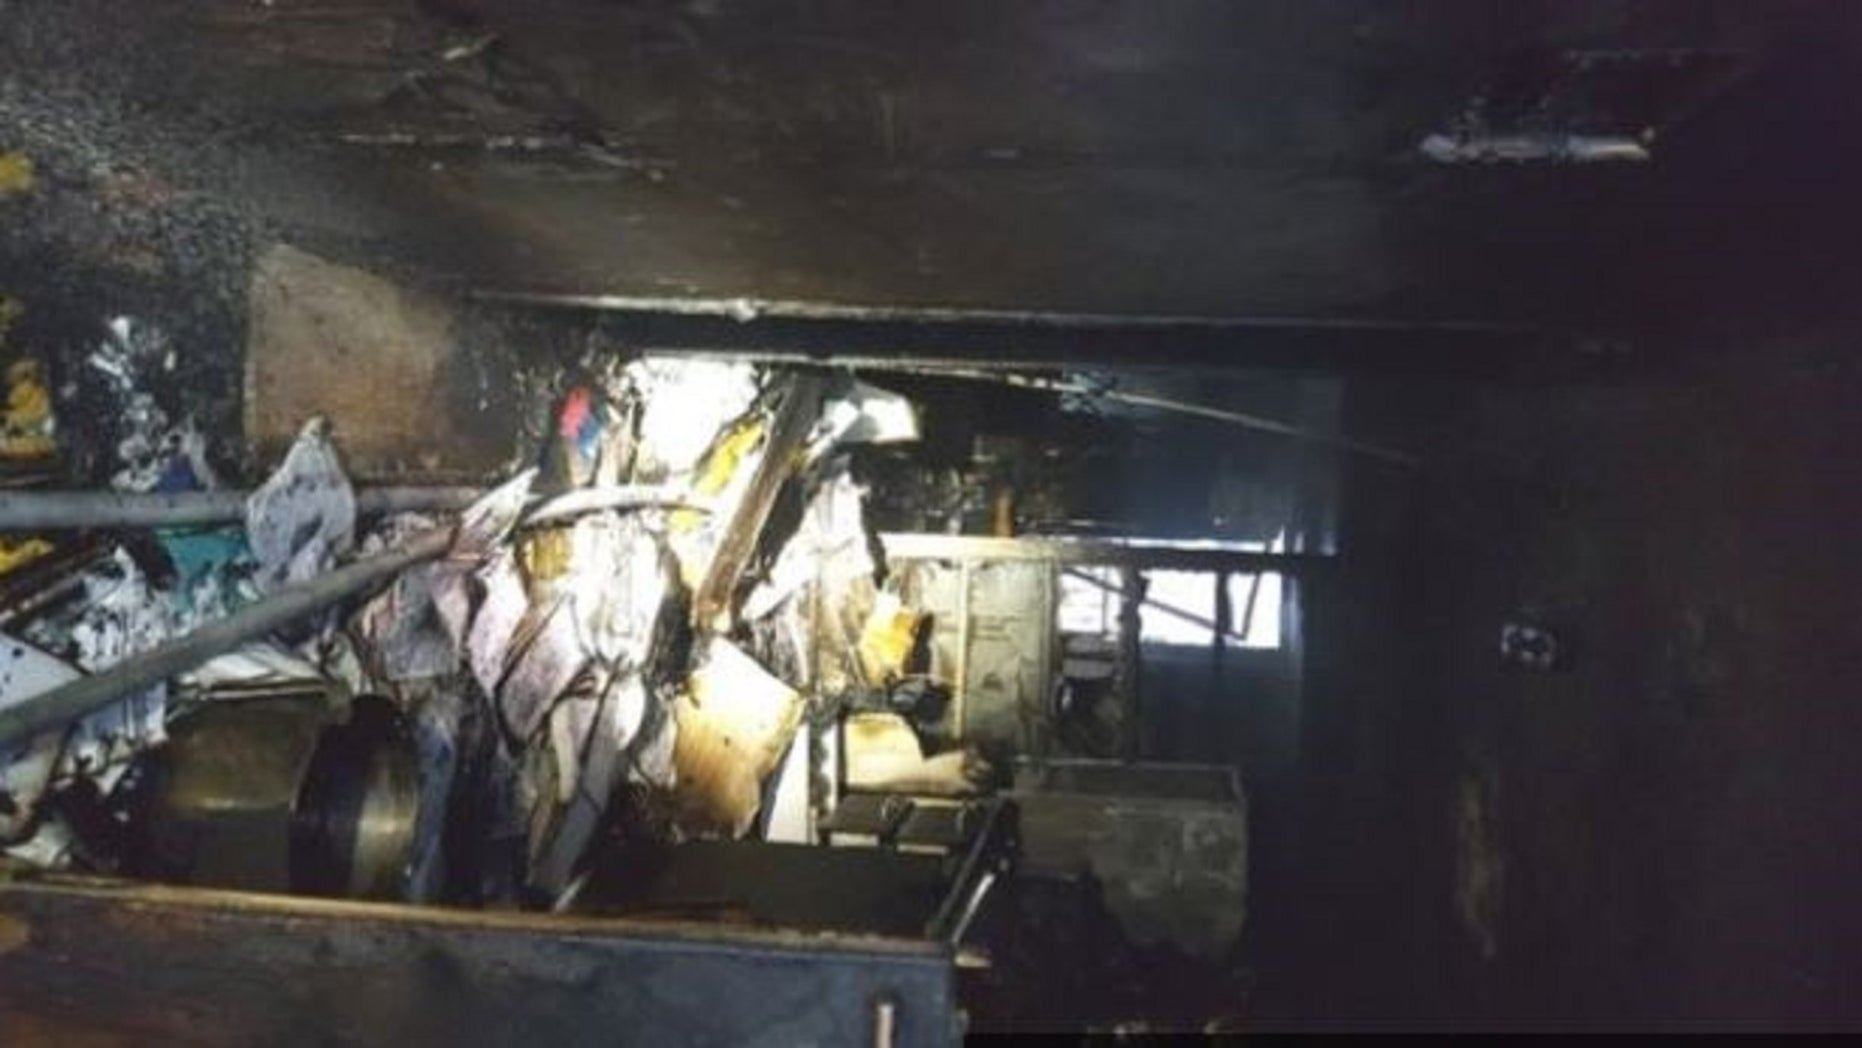 South Korean authoritiessaid a man set his apartment on fire Wednesday and stabbed building residents fleeing the blaze.